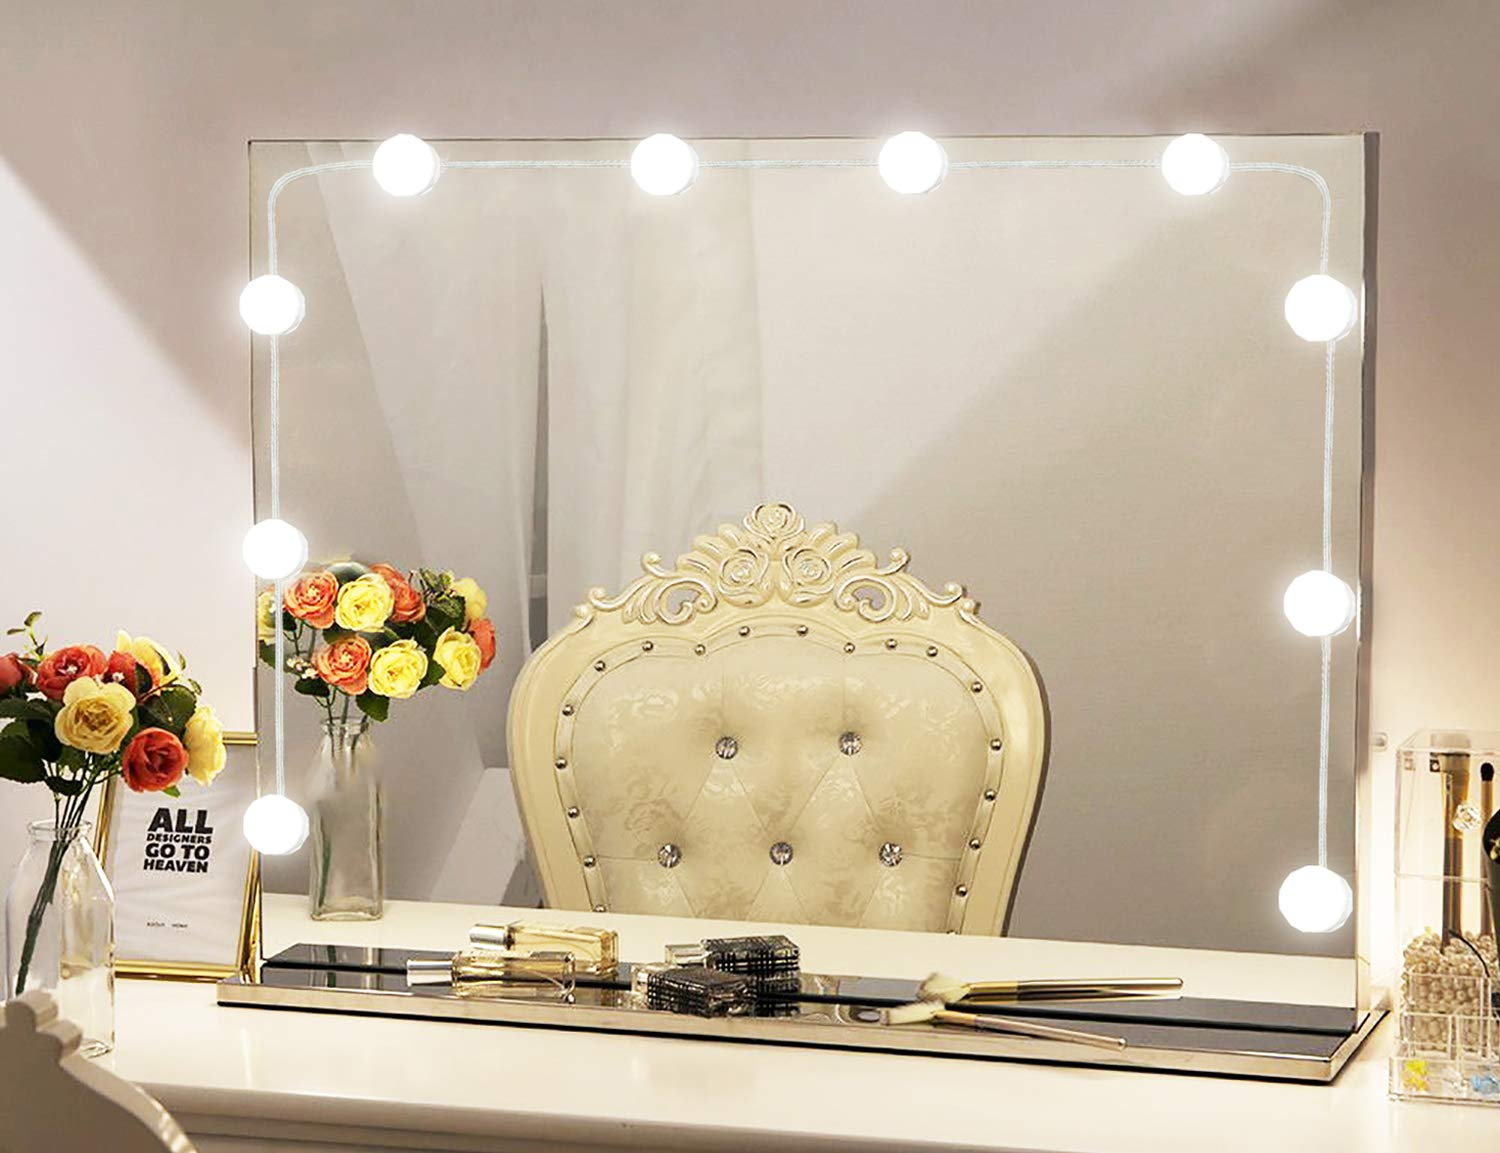 Vanity Mirror Lights Kit Hollywood Style 10 Dimmable LED Light Bulbs Warm White to Daylight Tunable, Linkable Lighting for Makeup Vanity Table Set/Dressing Room (Mirror Not Included)